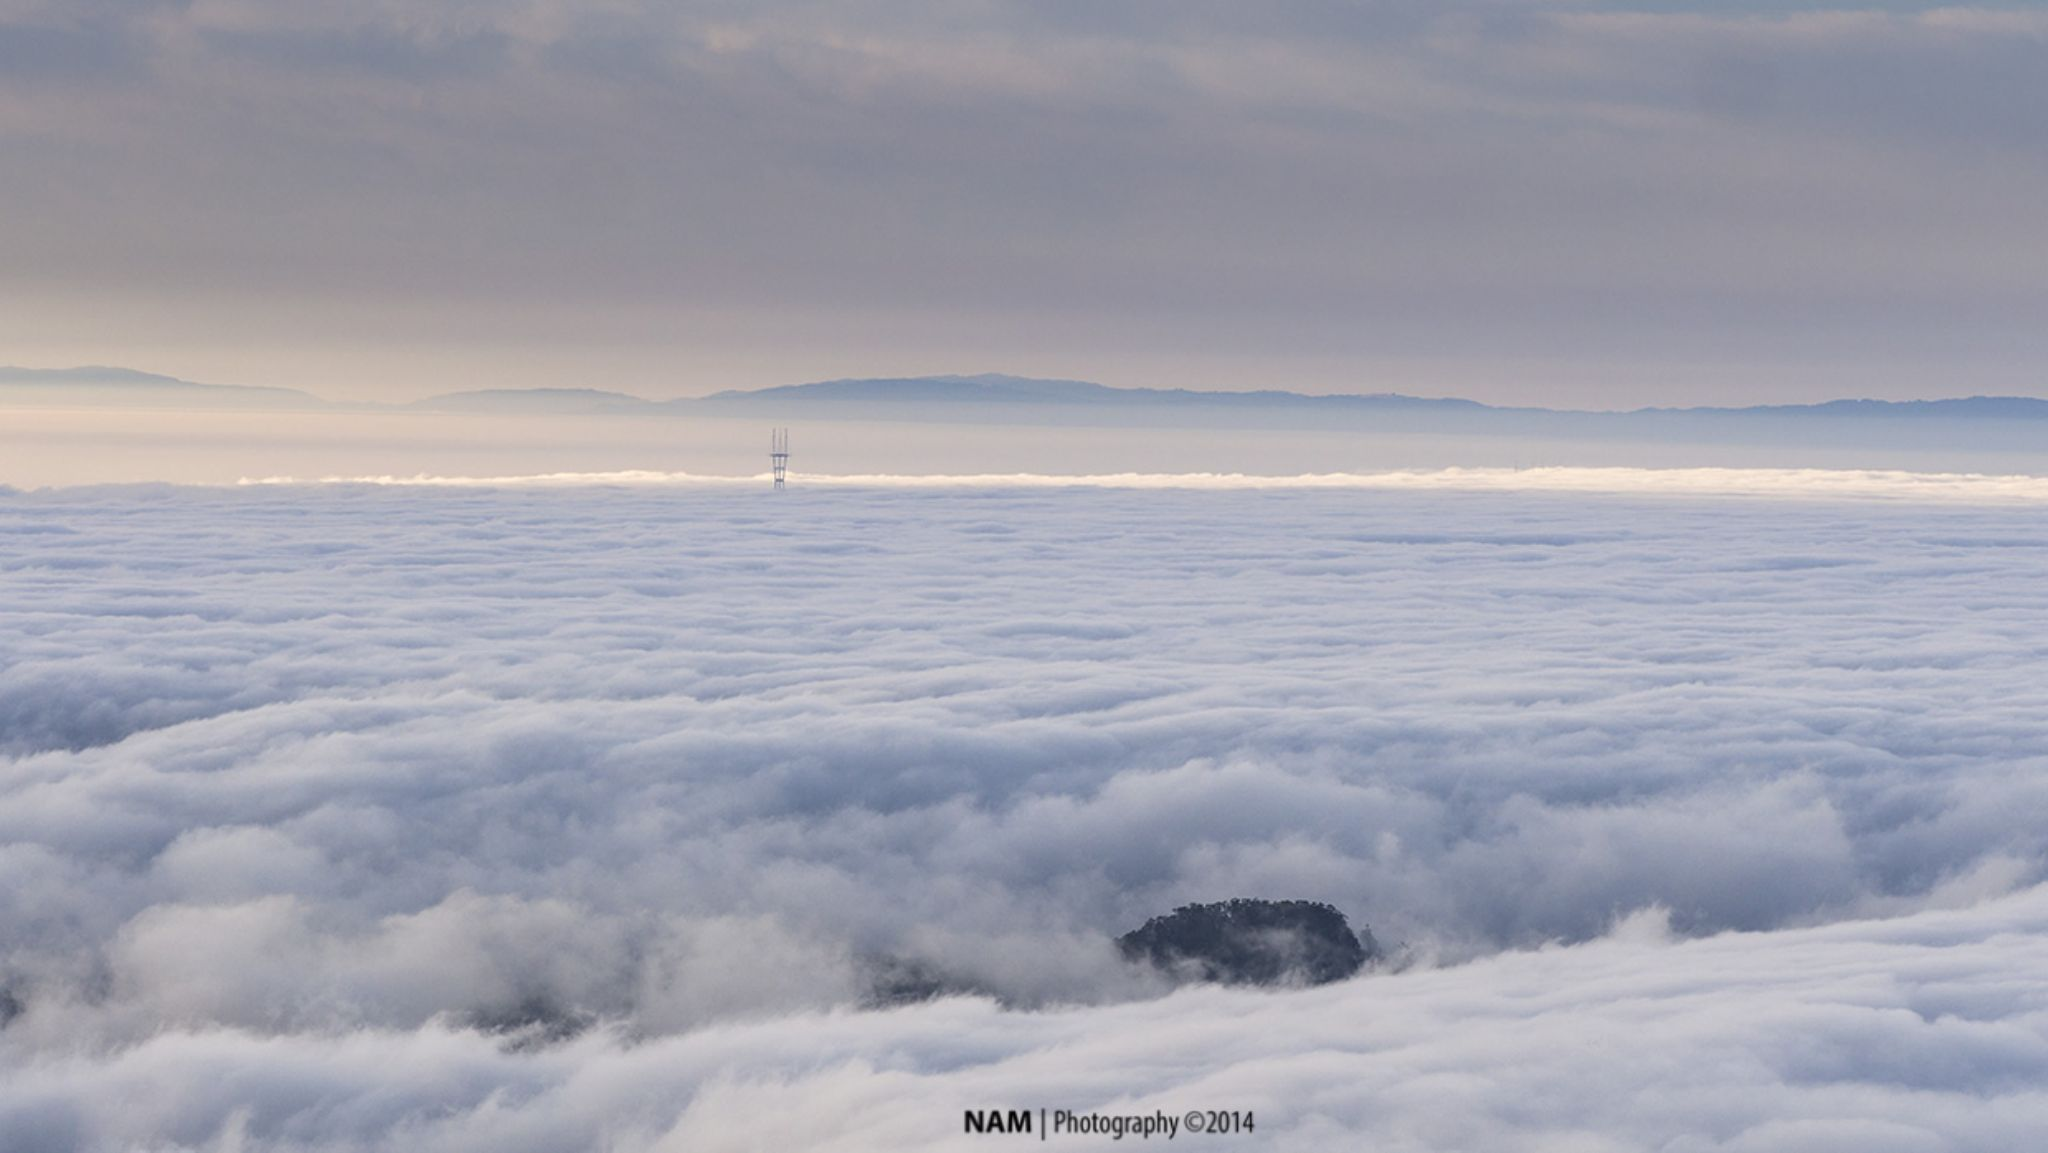 Ocean of Clouds by nam.ing